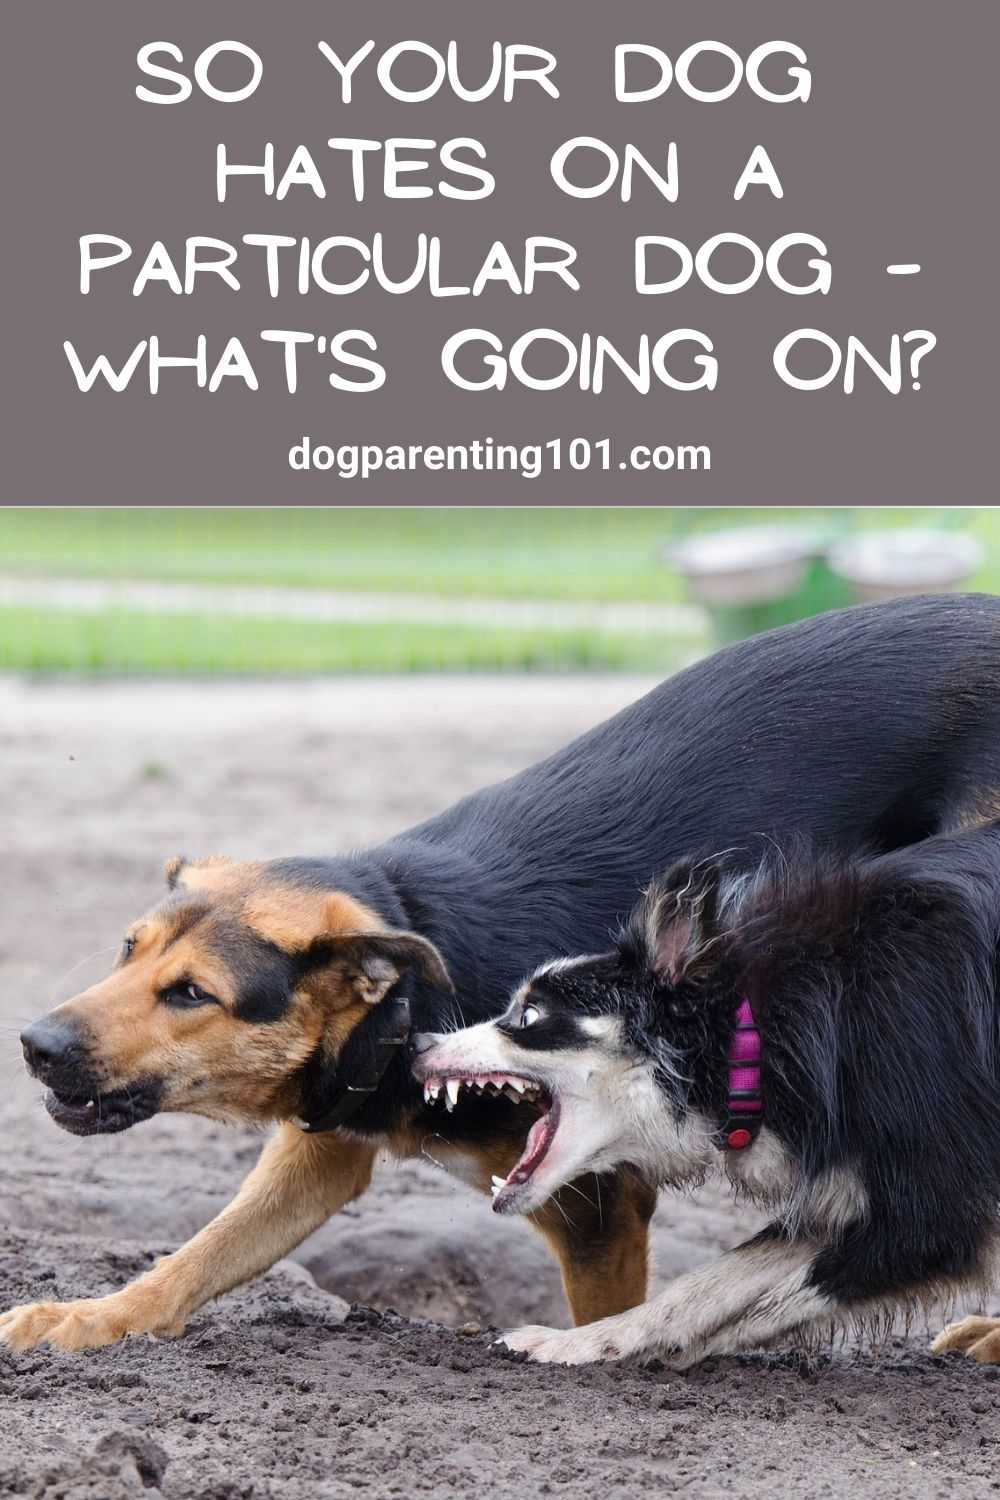 So Your Dog Hates on a Particular Dog What's Going On